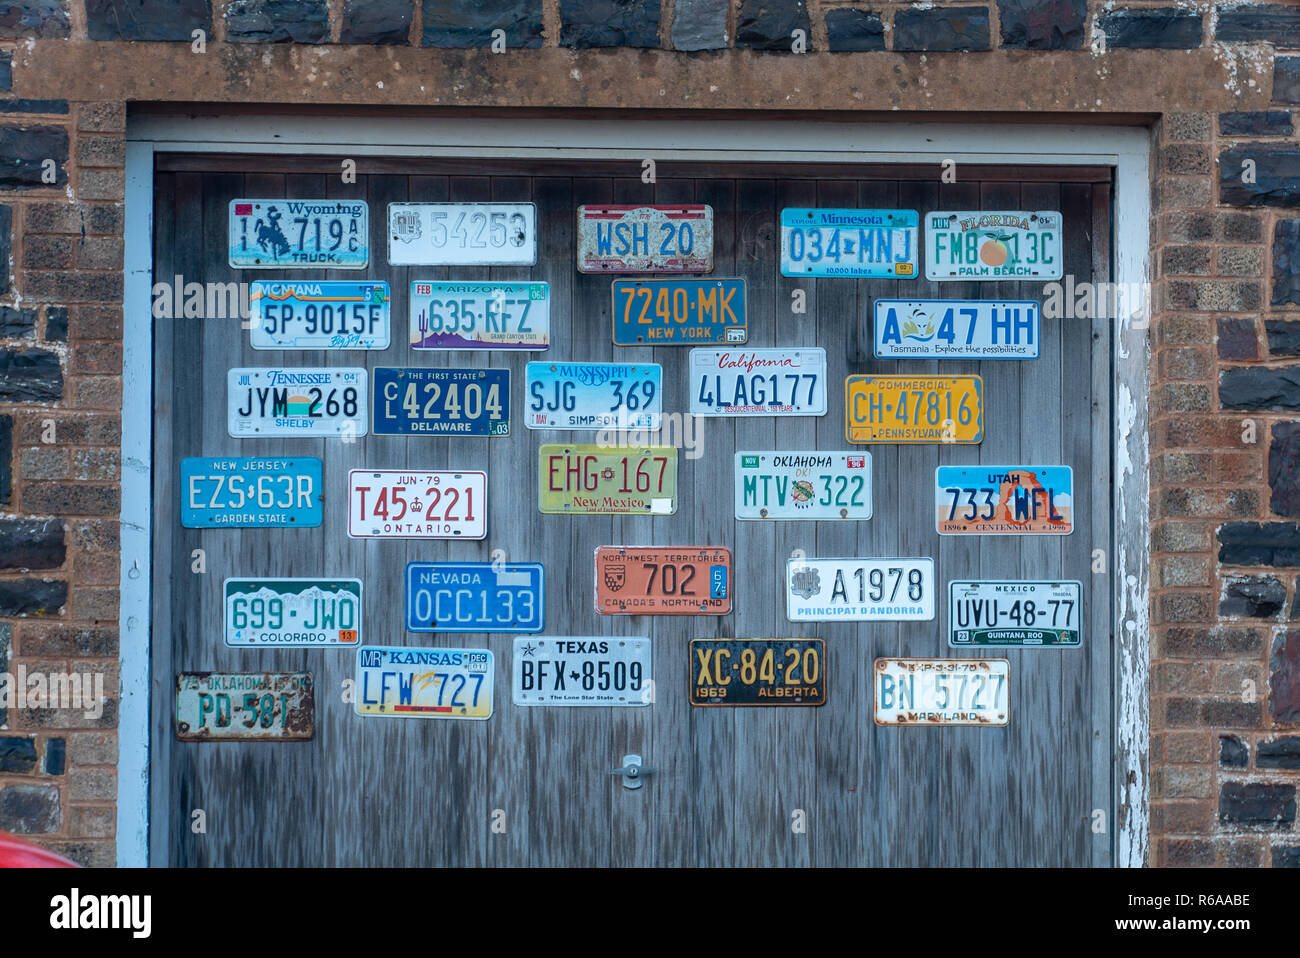 International vehicle registration plate collection - Stock Image